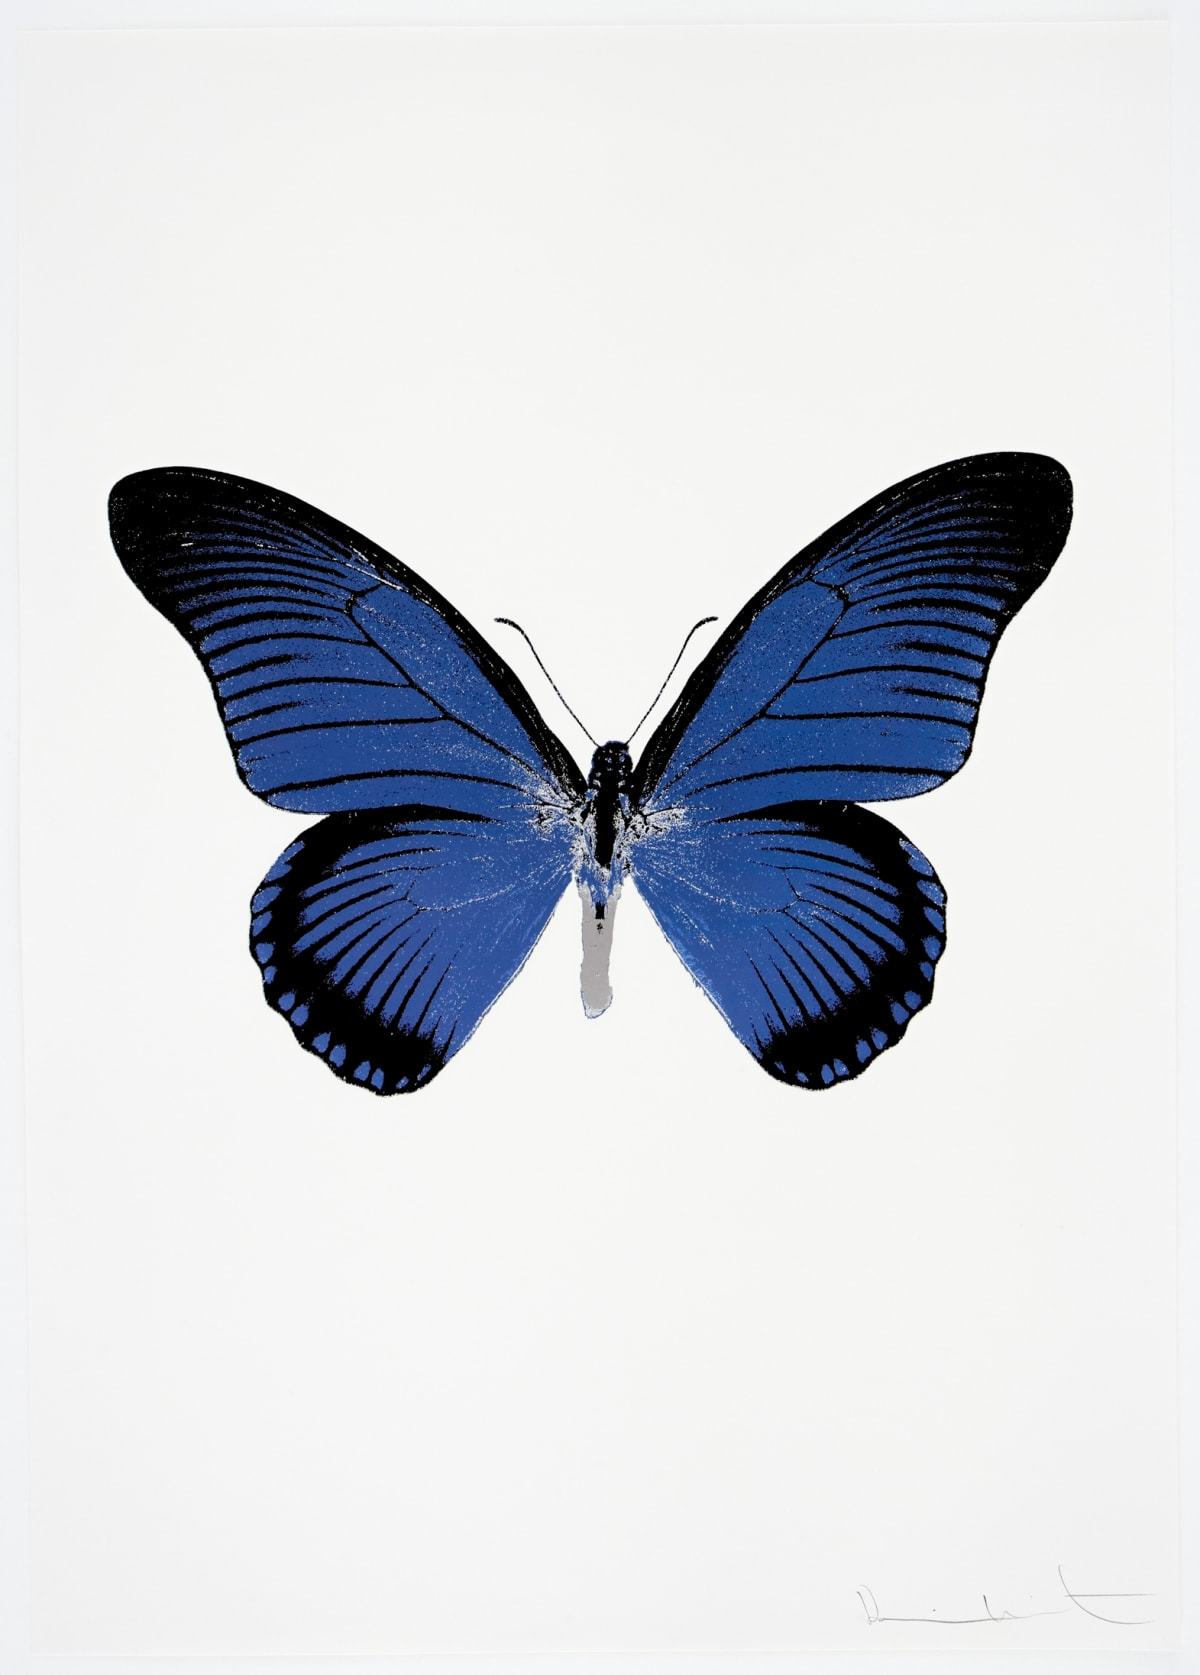 Damien Hirst The Souls IV - Frost Blue/Raven Black/Silver Gloss Damien Hirst butterfly foil print for sale Damien Hirst print for sale , 2010 3 colour foil block on 300gsm Arches 88 archival paper. Signed and numbered. Published by Paul Stolper and Other Criteria 72 x 51cm OC8030 / 1418-53 Edition of 15